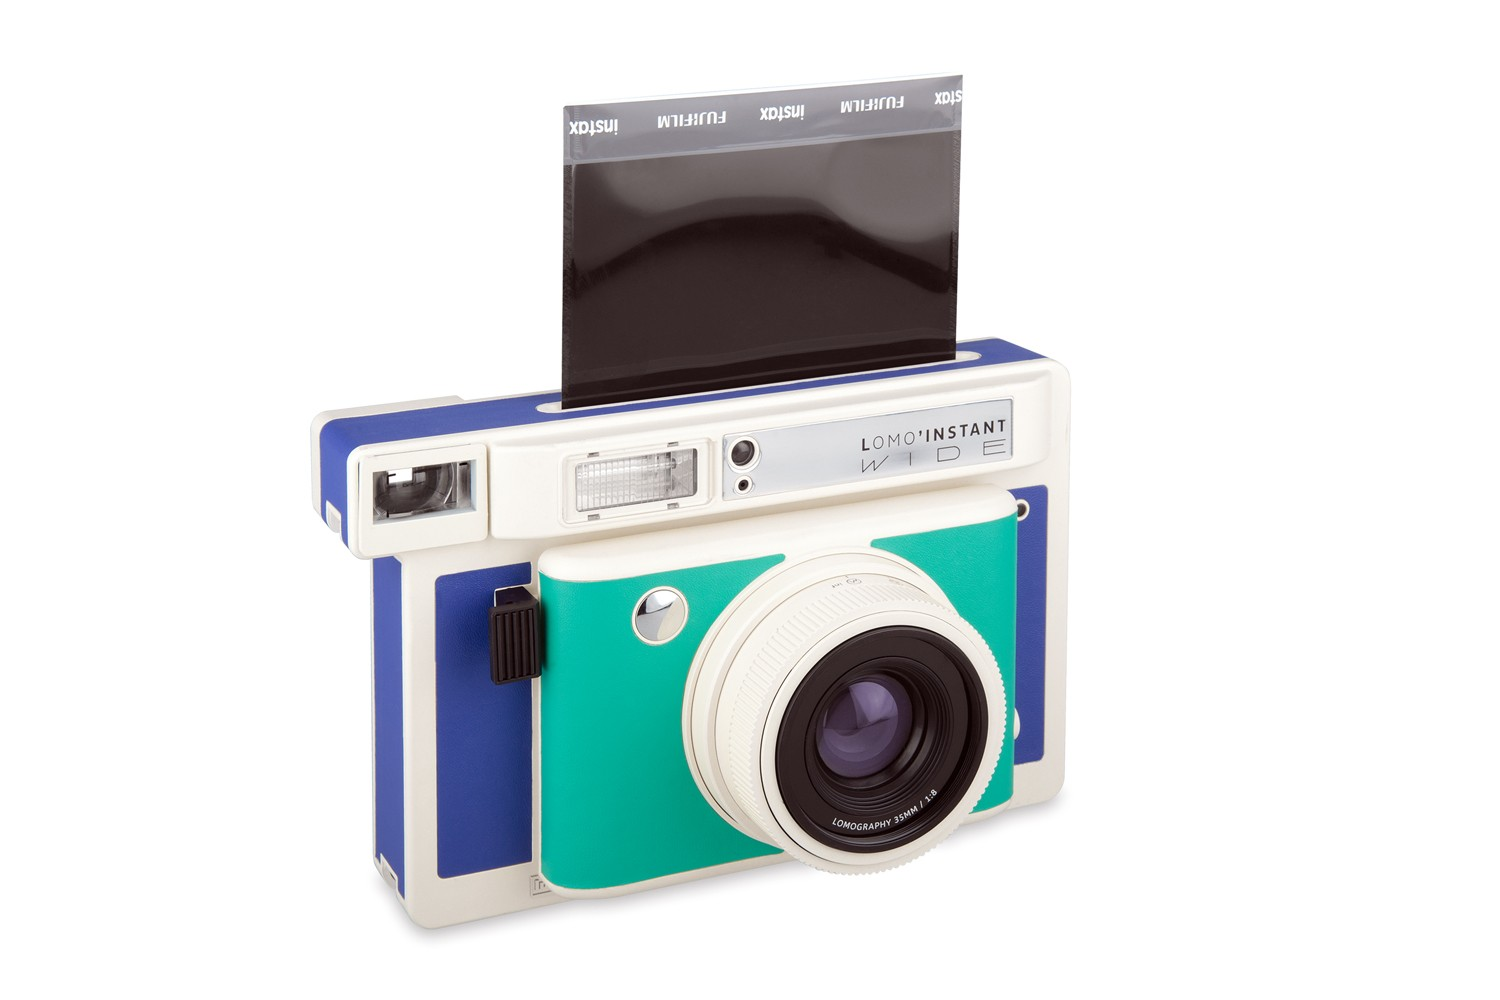 SNAPPP-Lomo'instant wide-sale